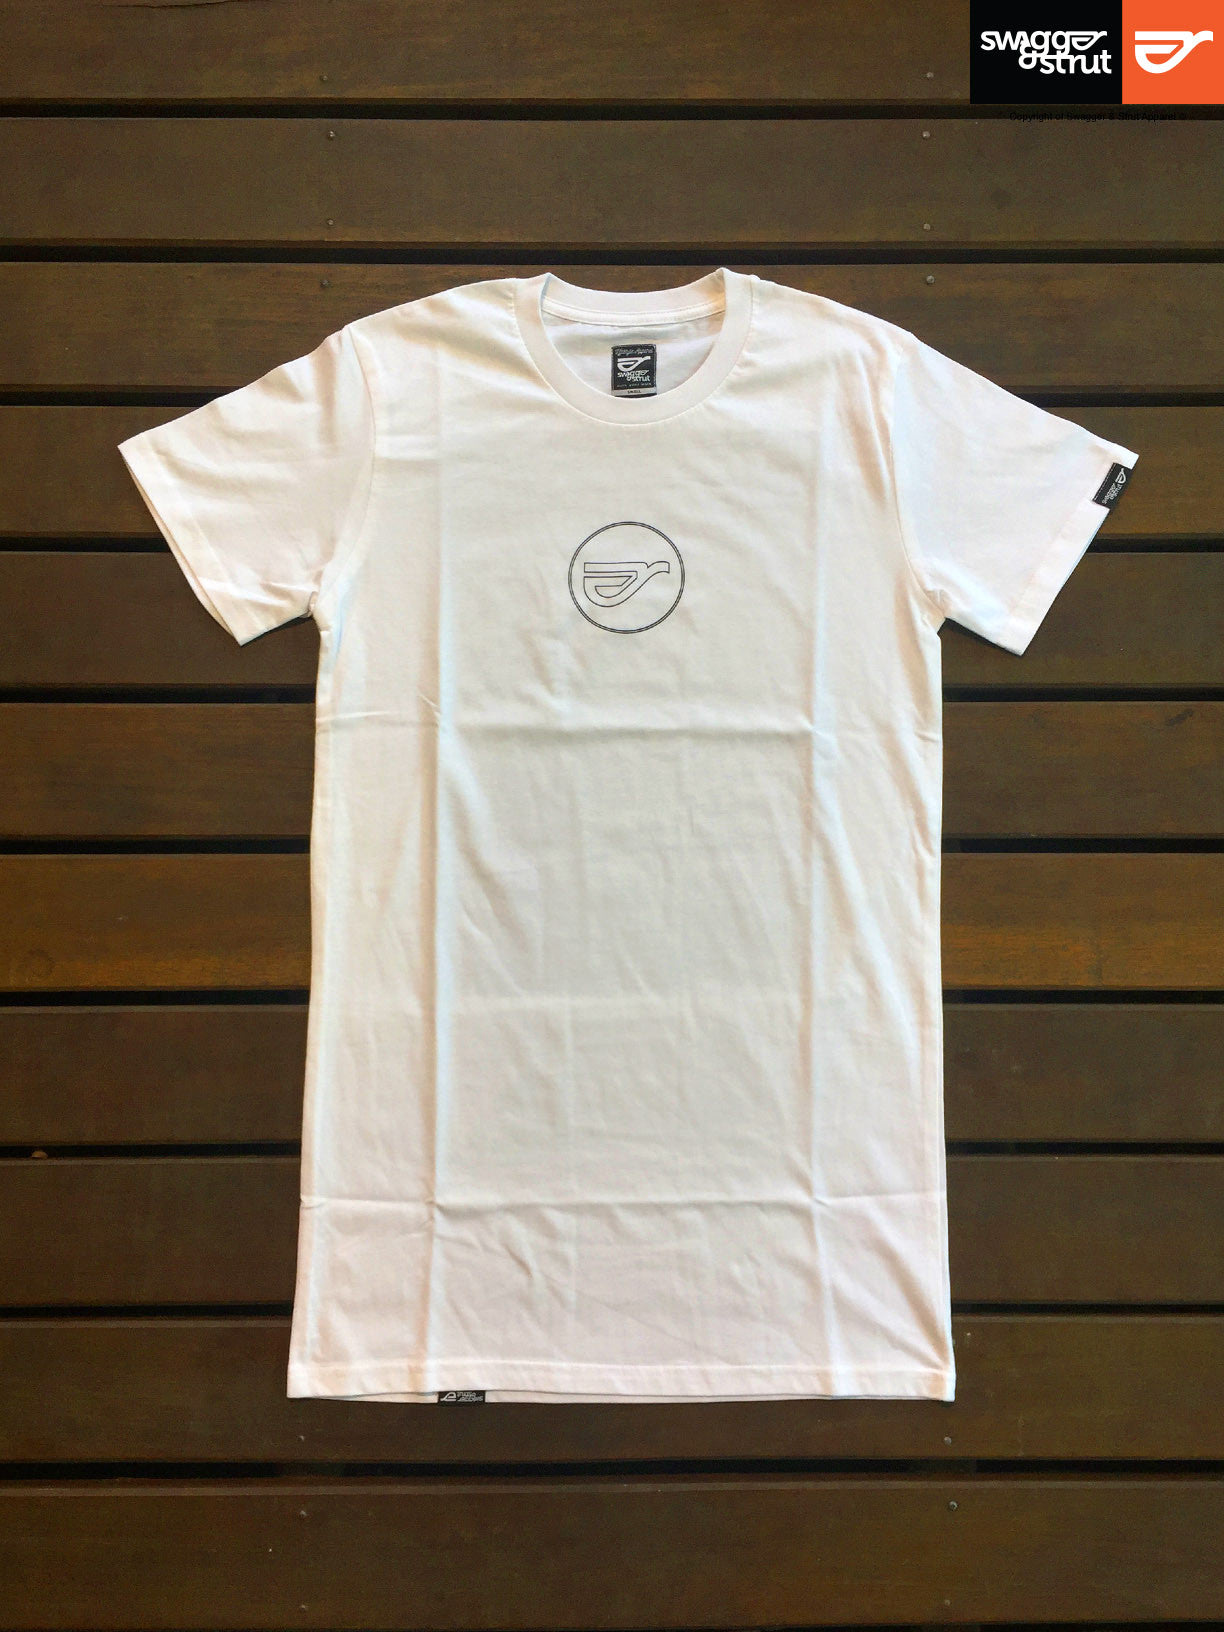 White Tall Tee - Male Regular Relax Fit T-Shirt